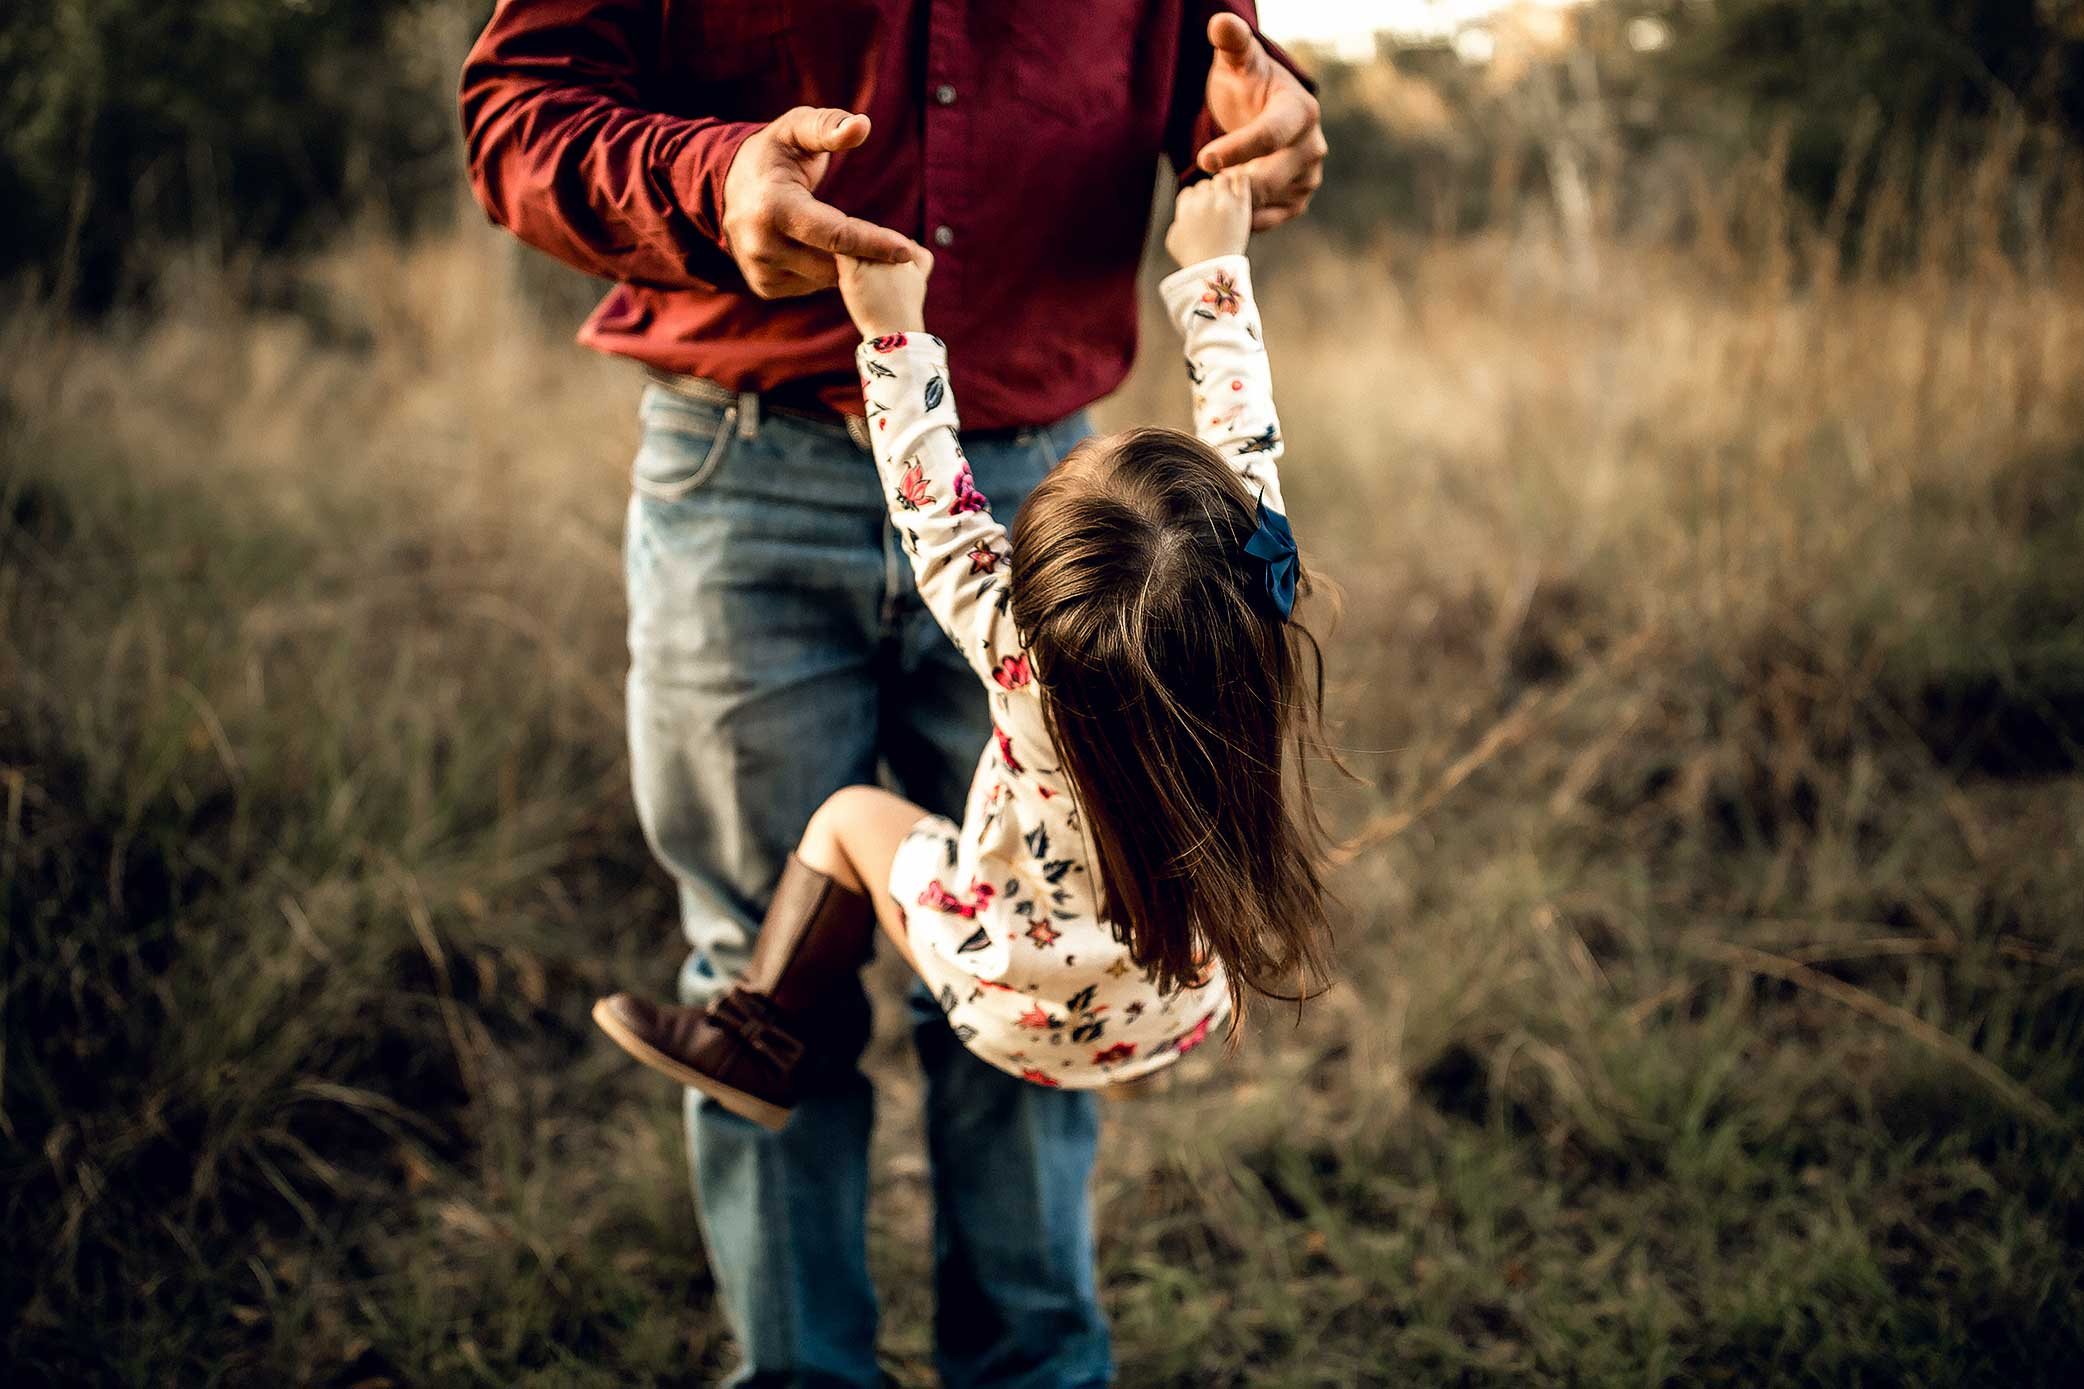 shelby-schiller-photography-family-dad-swinging-daughter.jpg